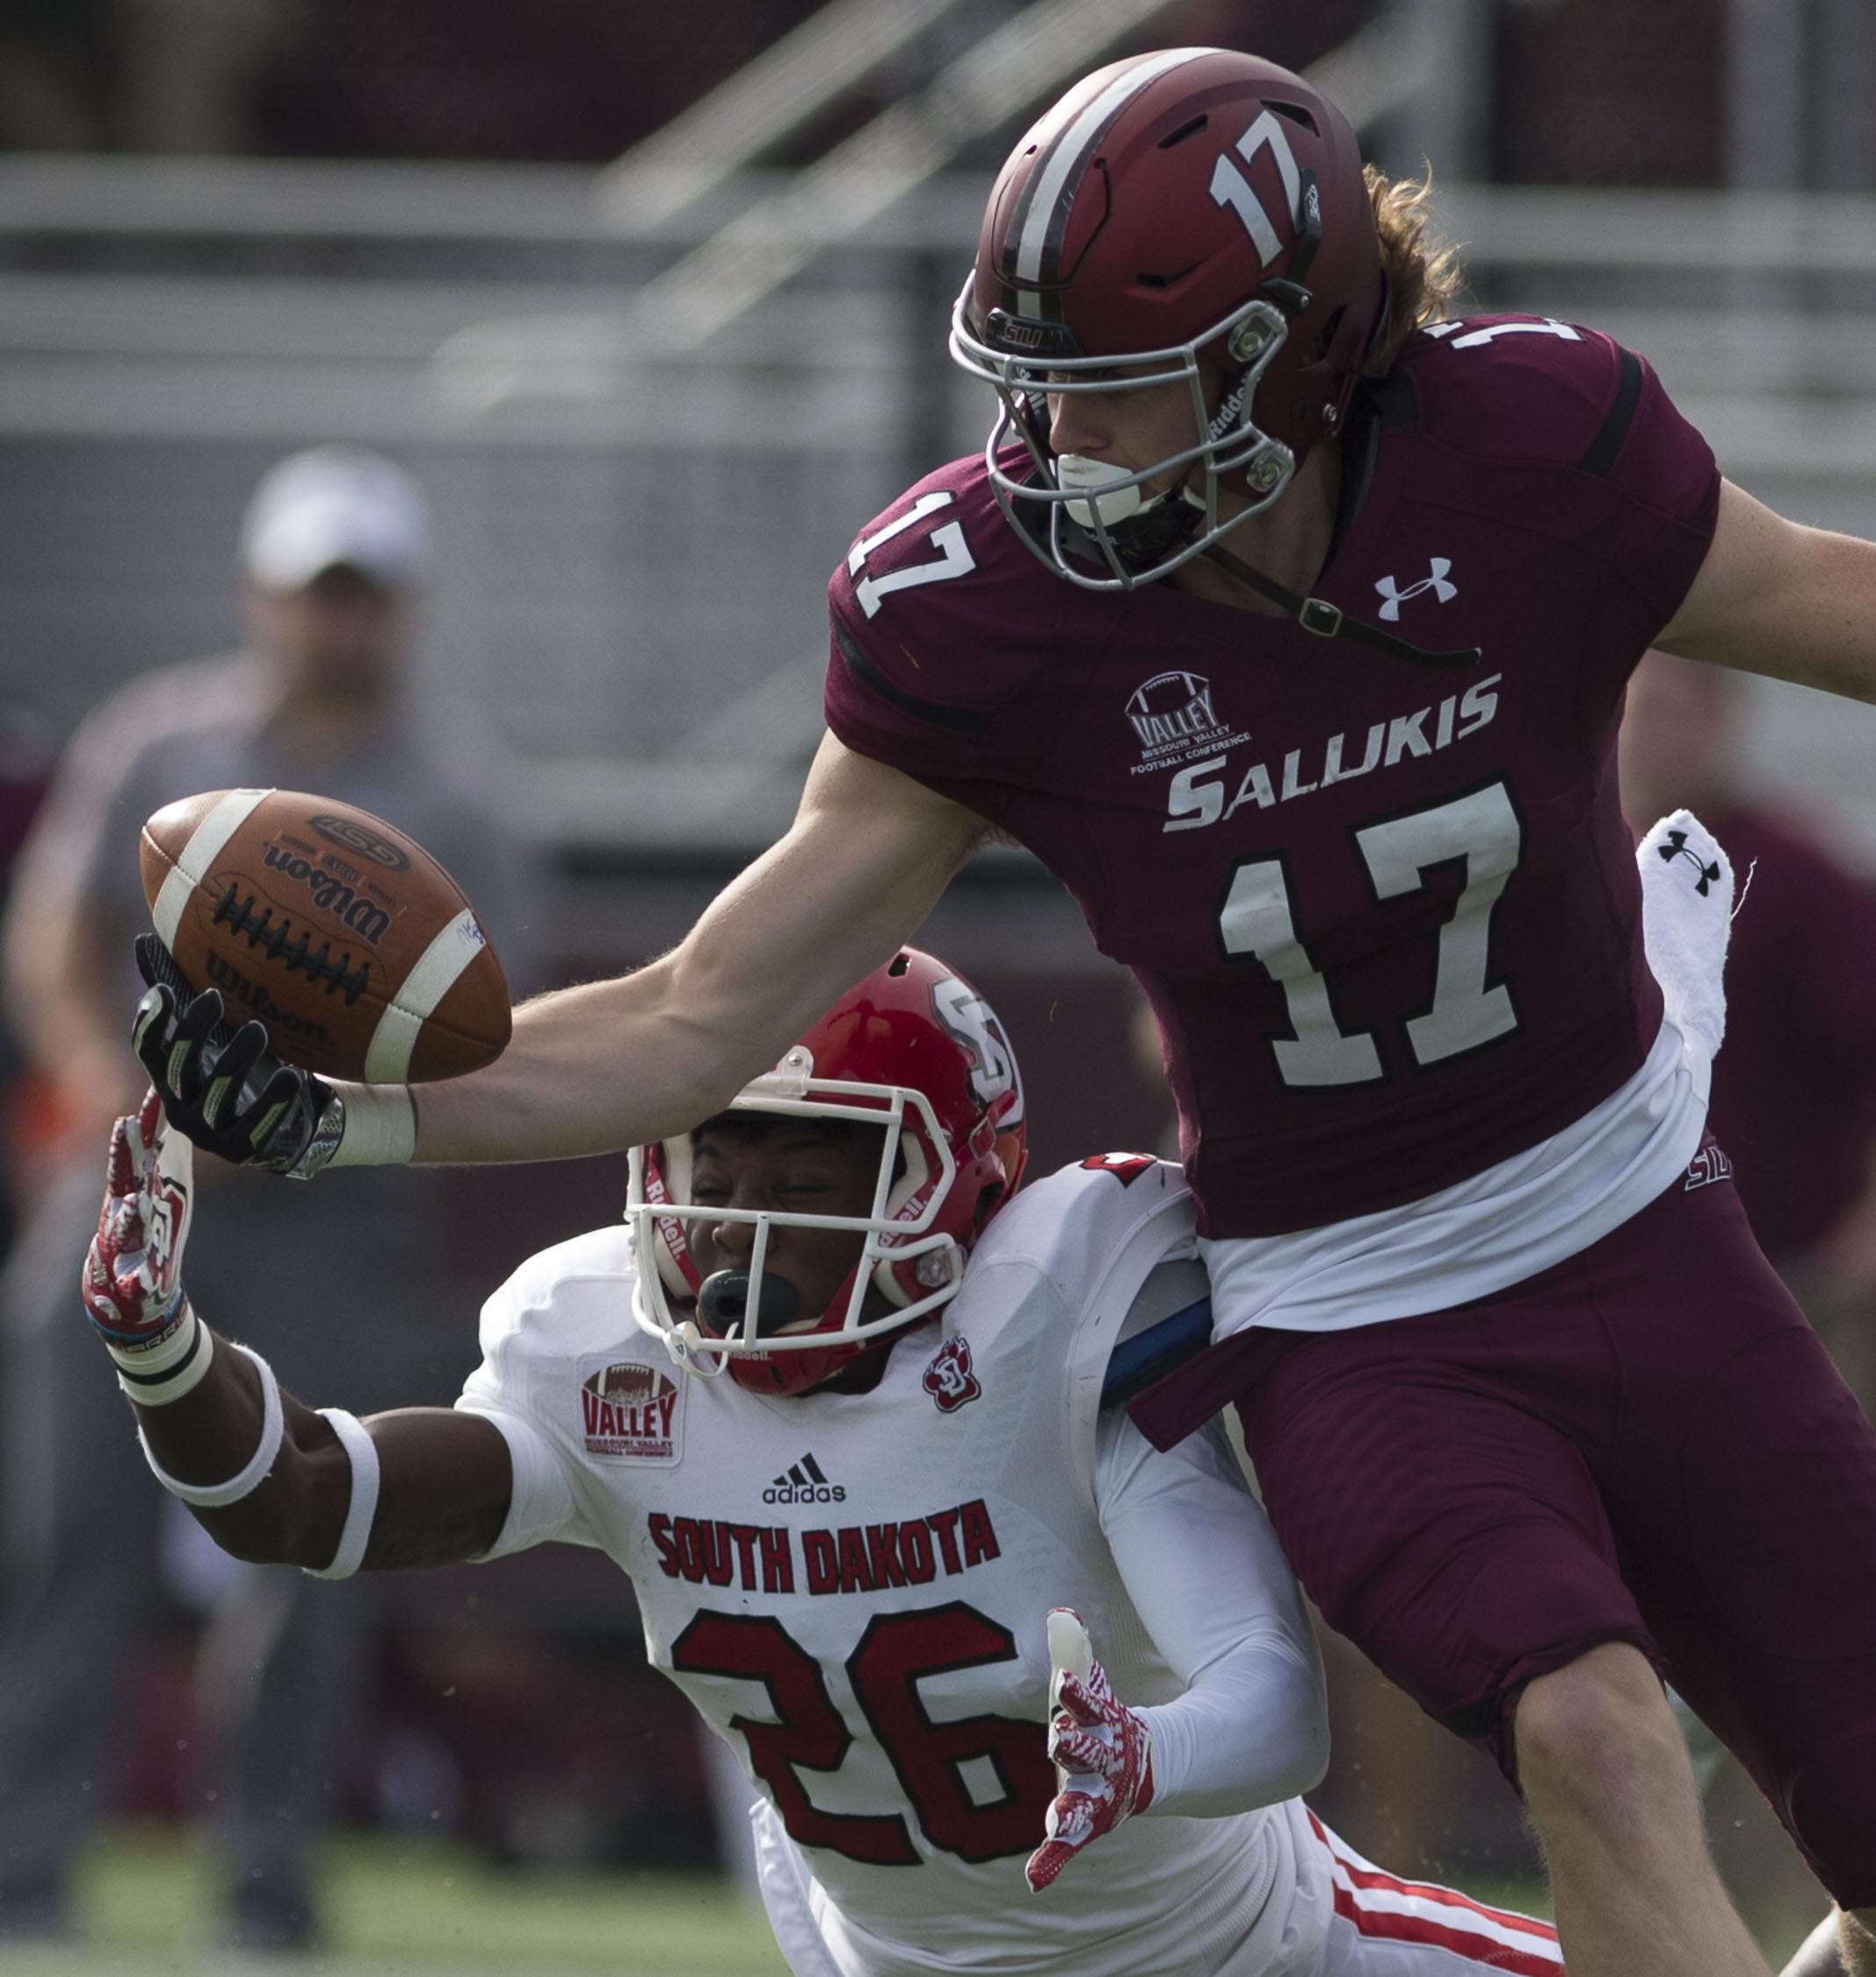 Senior wide receiver Billy Reed (17) reaches to recieve a pass as South Dakota sophomore defensive back Danny Rambo (26) attempts to intercept Saturday, Nov. 5, 2016, during the Salukis' 35-28 win against the University of South Dakota Coyotes at Saluki Stadium. (Ryan Michalesko | @photosbylesko)